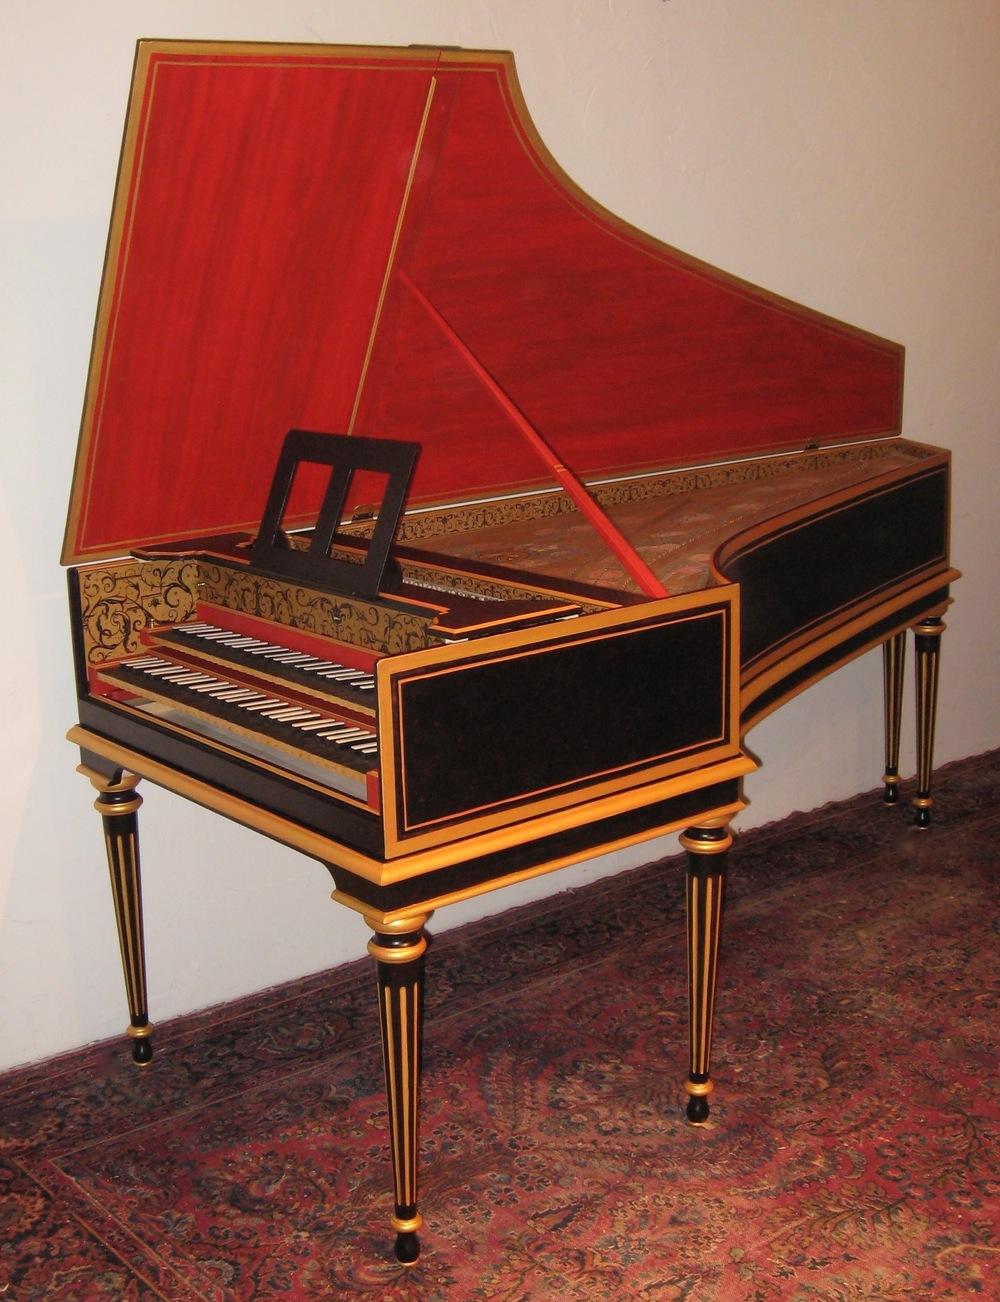 THIS  HARPSICHORD  IS  MY  OPUS   4 3 6   MADE   IN  2011  after  THE  1 7 6 9   TASKIN  IN  THE  RUSSELL  COLLECTION  IN  EDINBURGH,  SCOTLAND .   IT  IS  OWNED  BY  SIMON   NeaL  in  Cambridge,  england